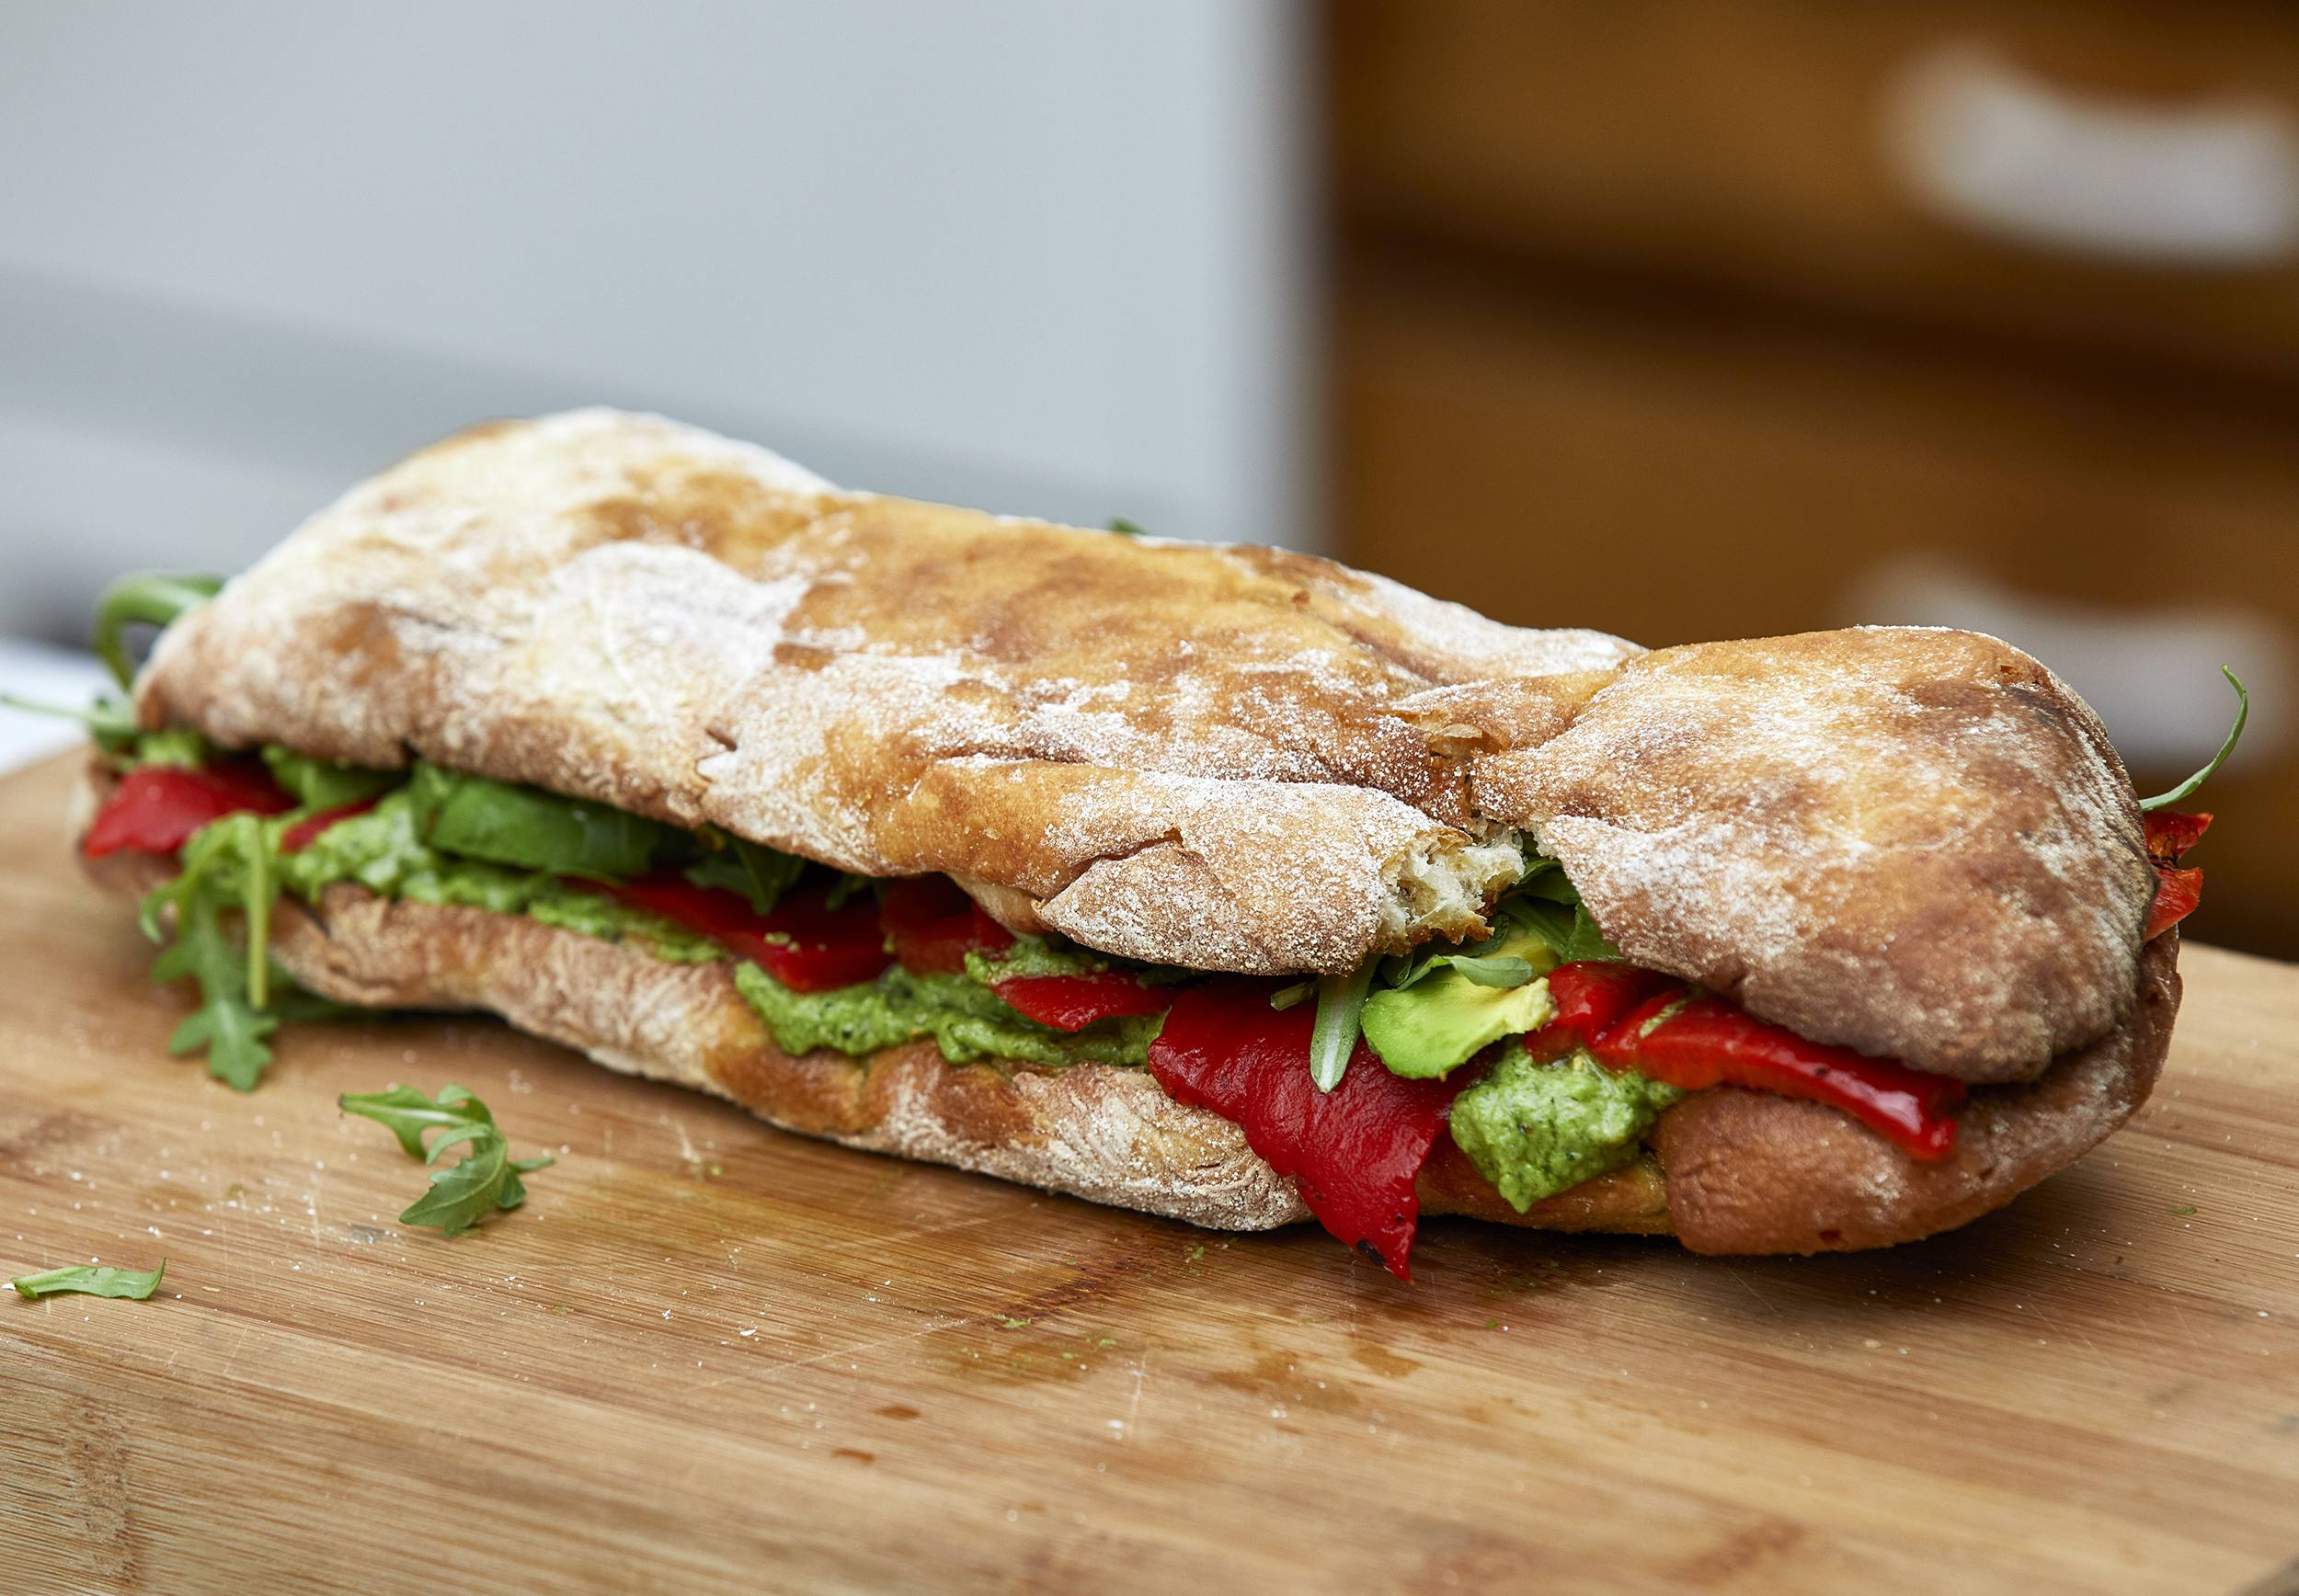 recipe image Pea, Basil and Pine Nut Pesto Ciabatta with Roasted Red Pepper, Avocado and Rocket